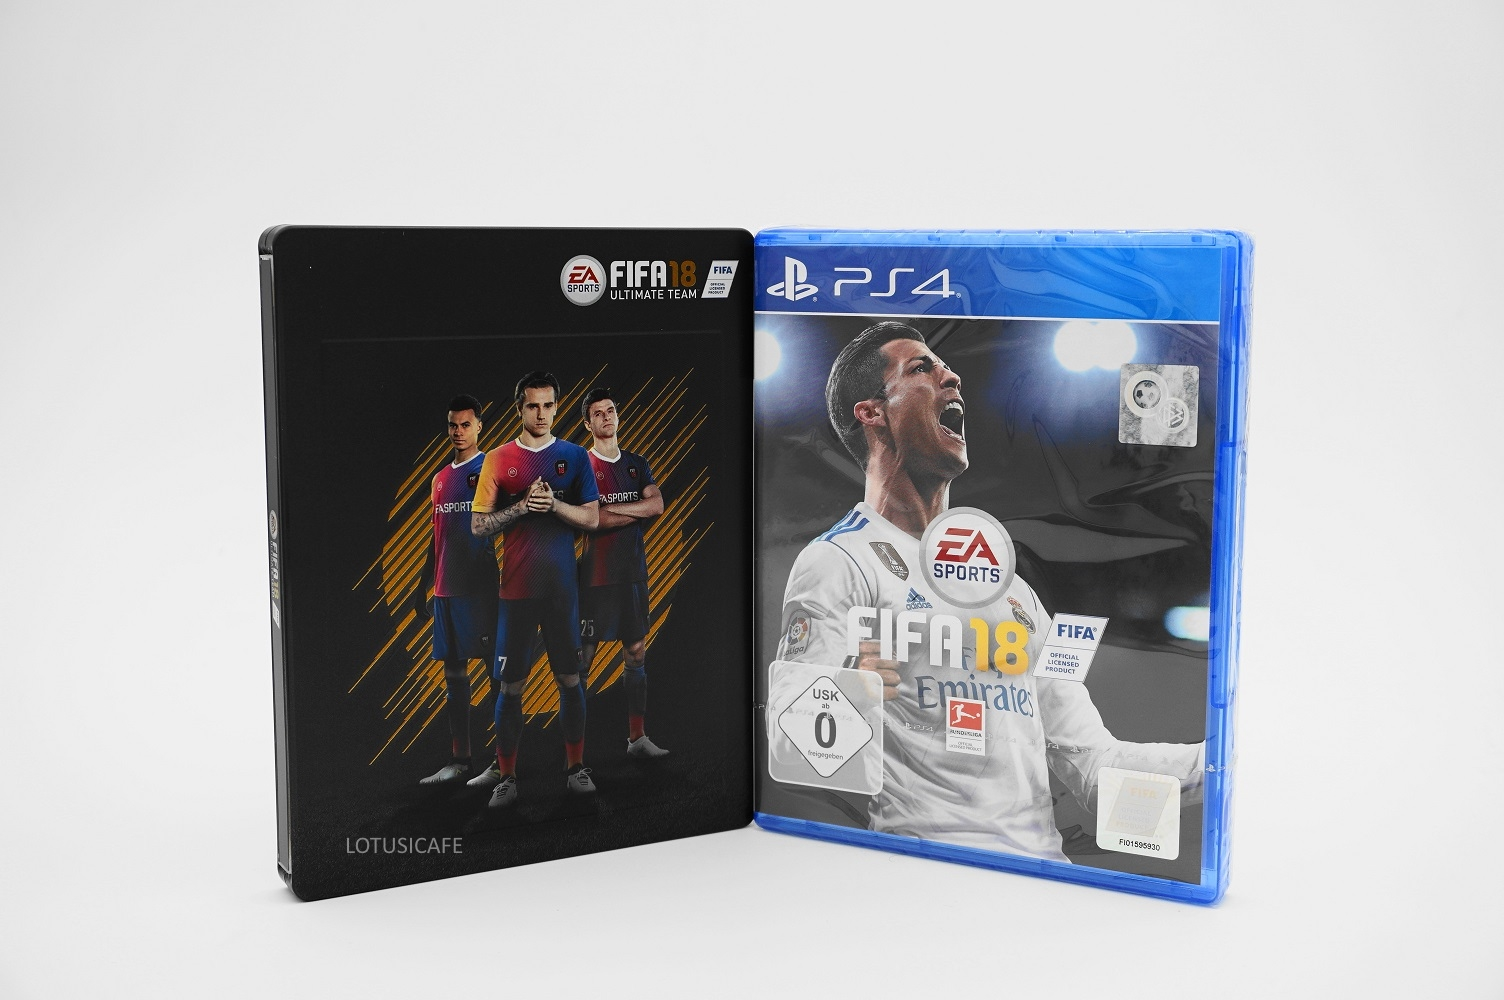 fifa 18 steelbook ps4 sony playstation 4 2018 neu. Black Bedroom Furniture Sets. Home Design Ideas